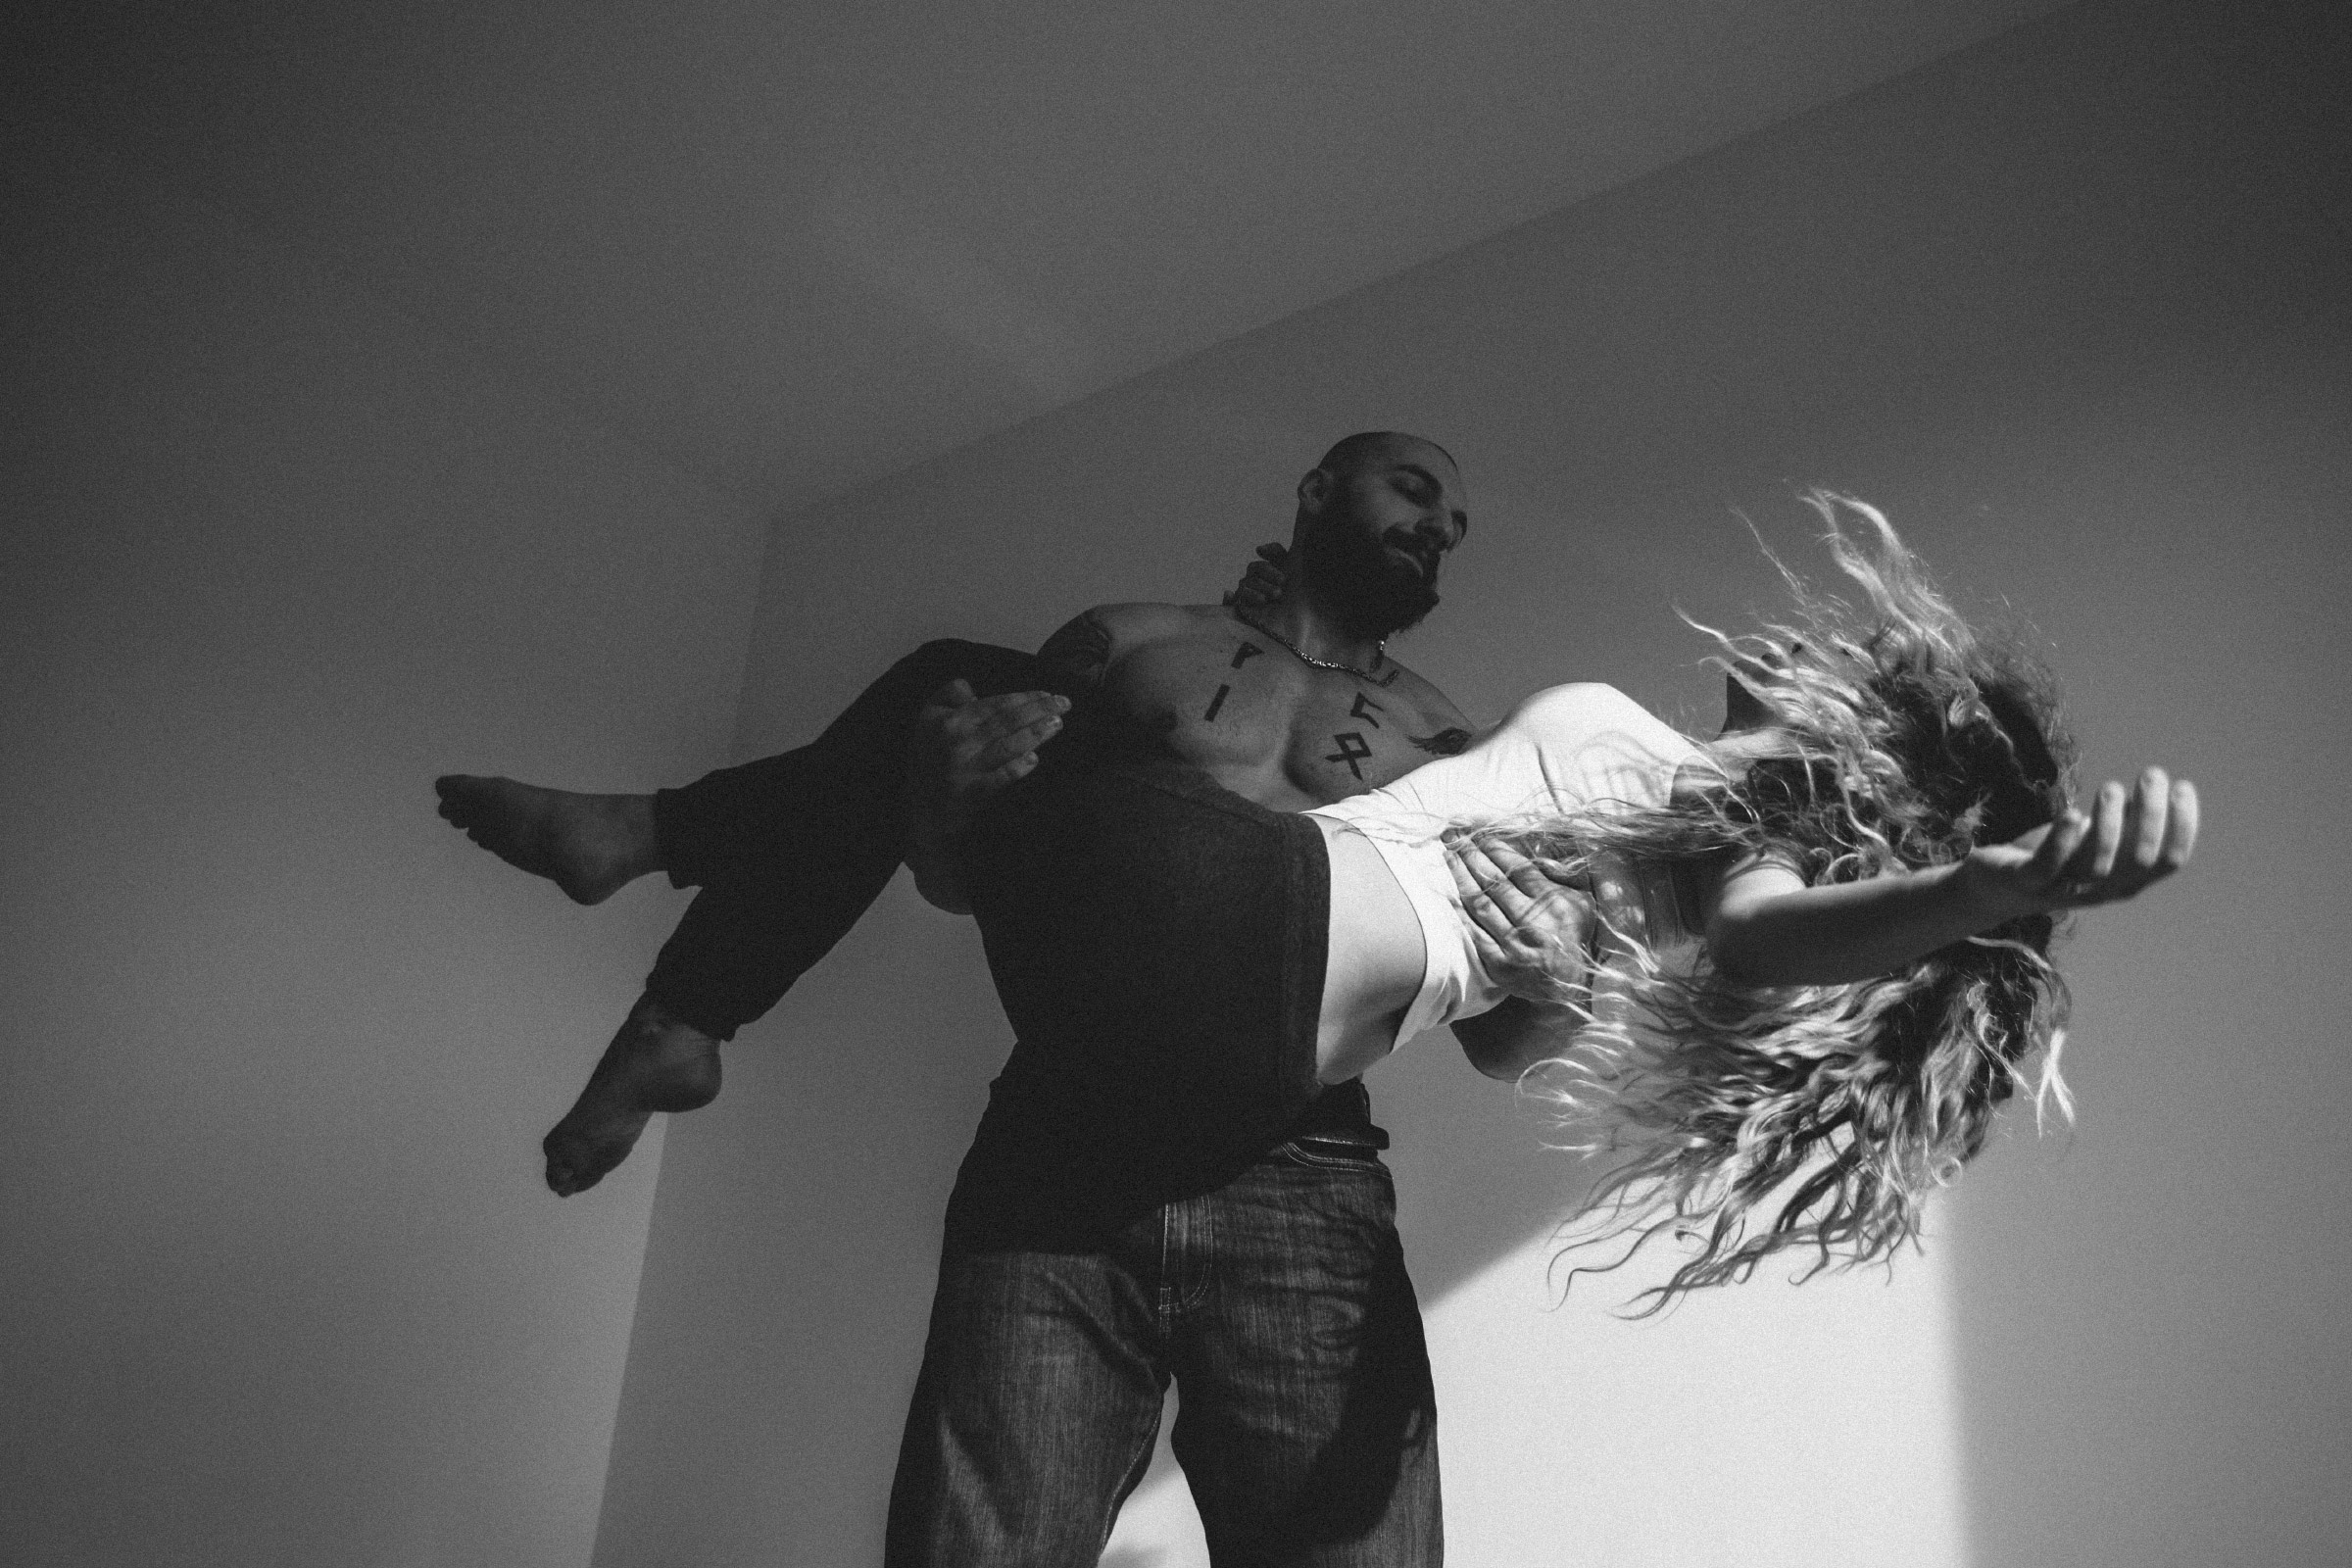 An engaged couple from Bucharest. He is stunt performer participating in different contests, and an active member of Strongman Champions League, Romania. She is also a former sport performer. (Natalia Mindru/GroundTruth)